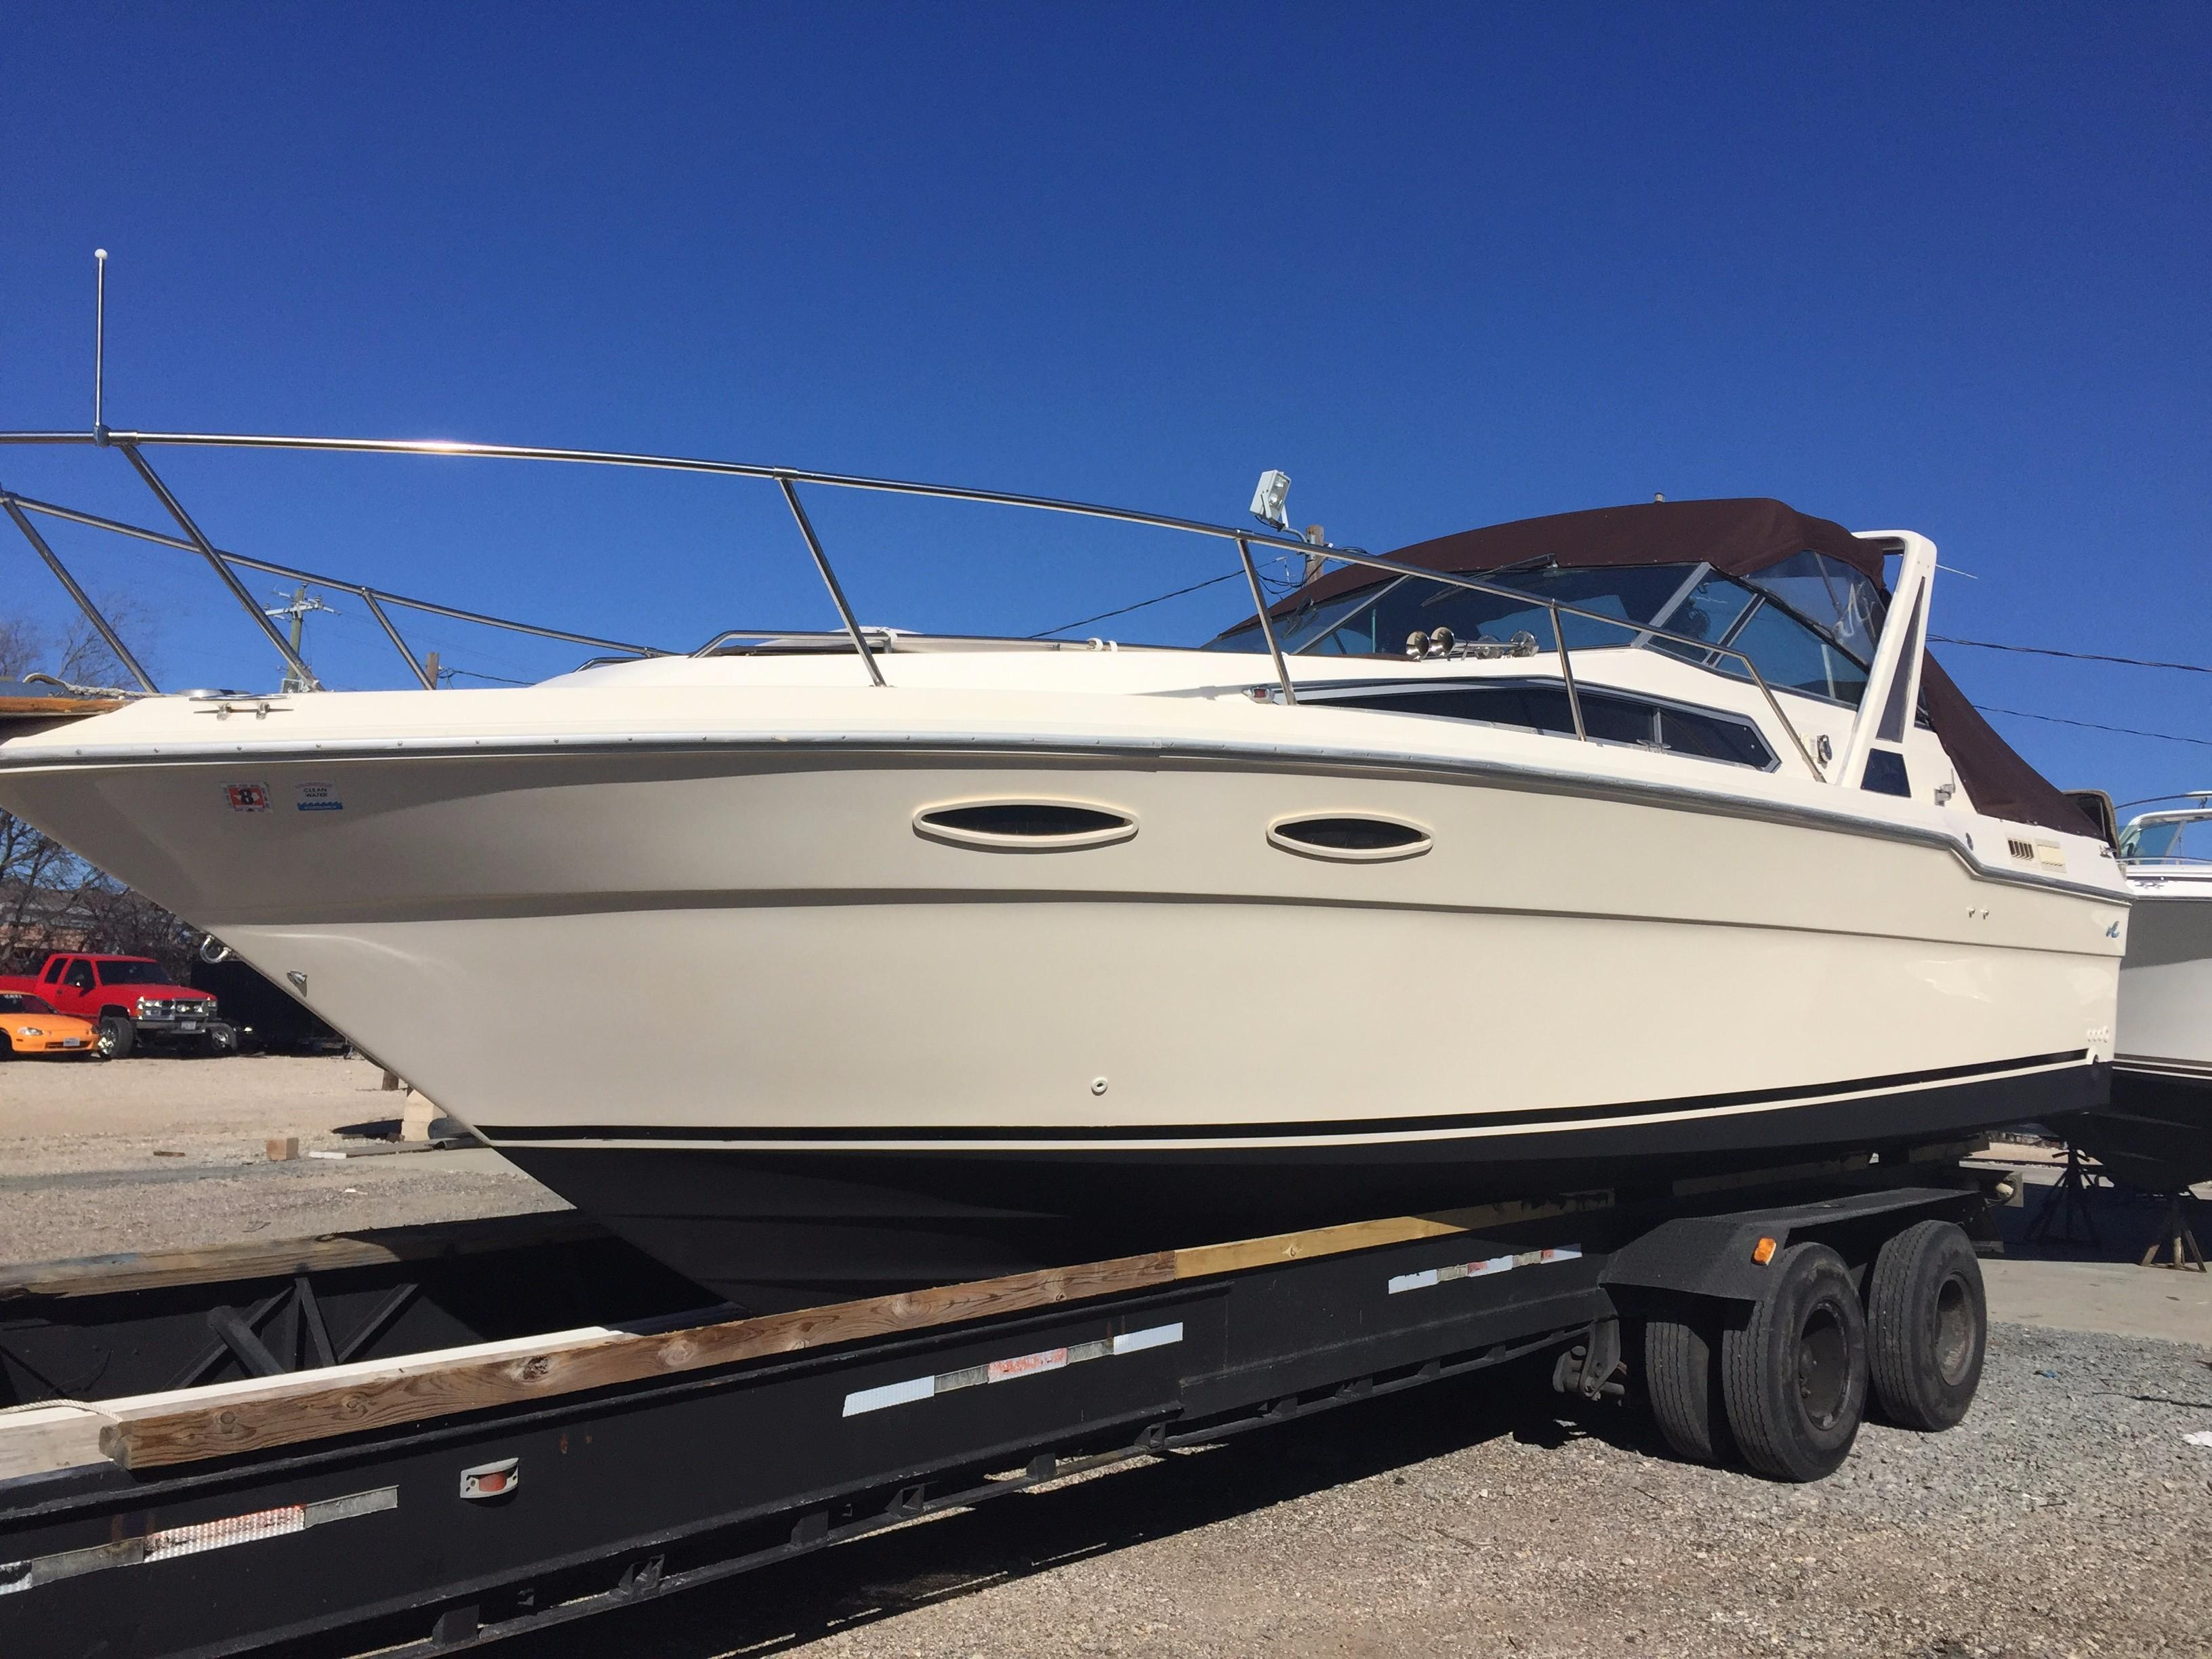 1987 Sea Ray 300 Weekender Power New And Used Boats For Sale